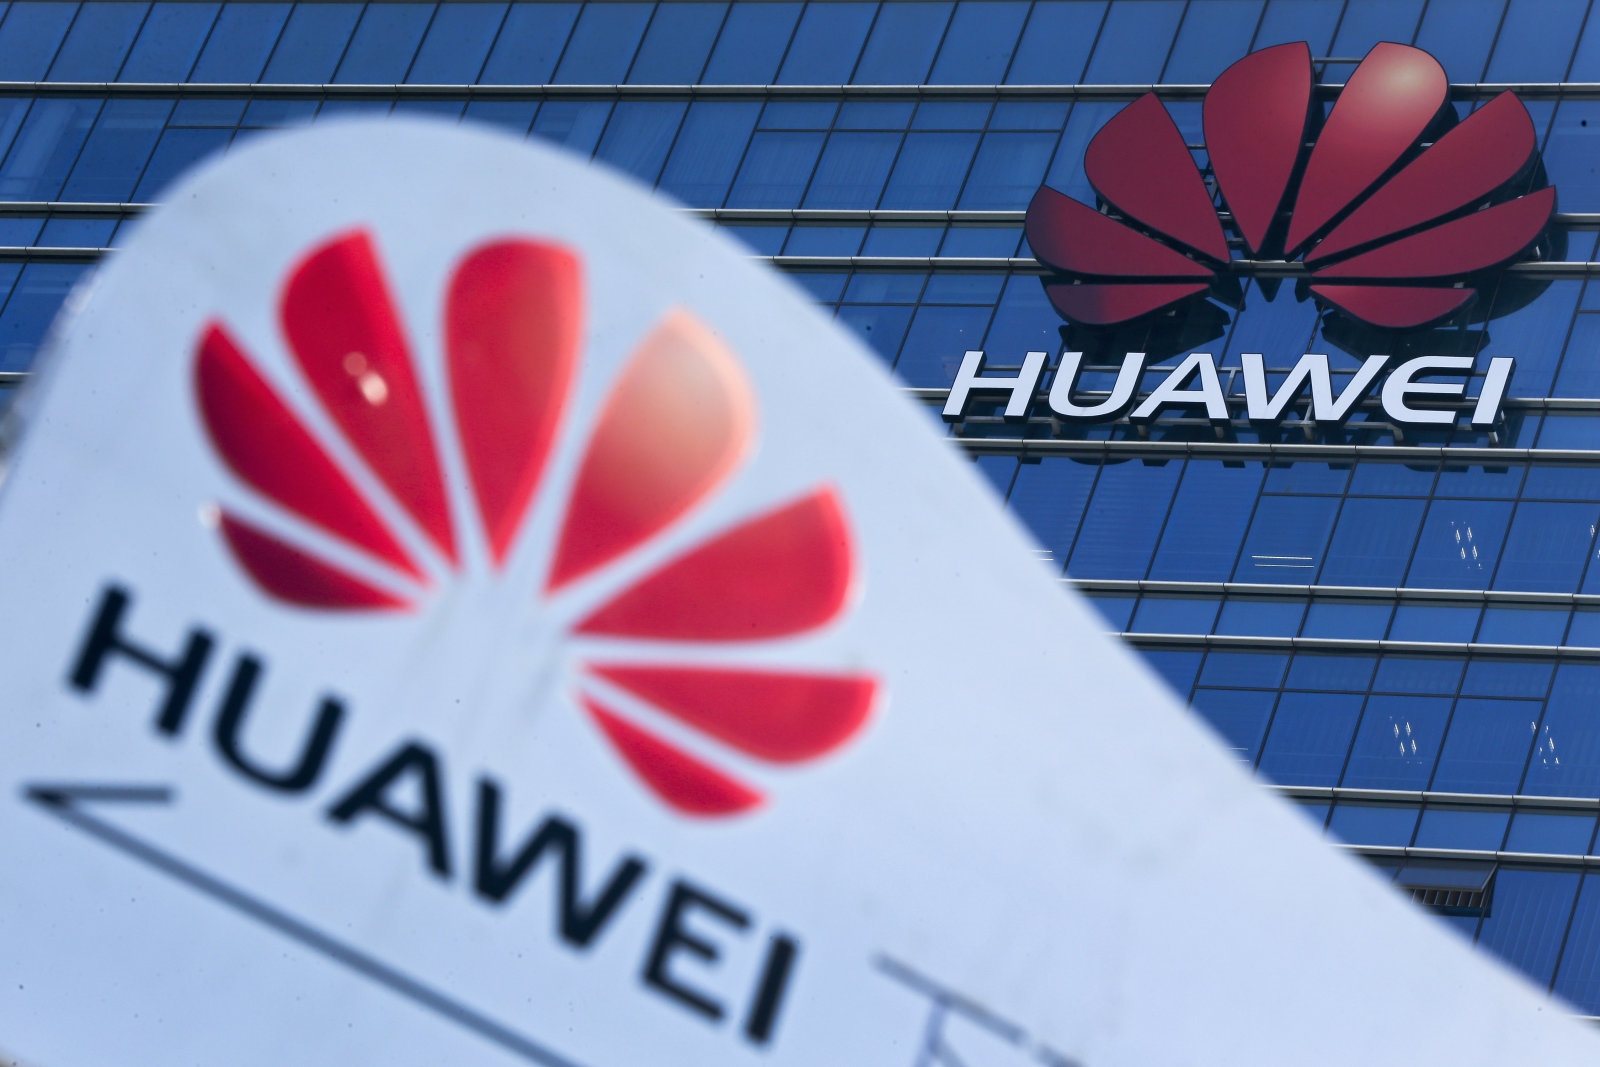 Government reportedly asked Redskins to nix free WiFi deal with Huawei | DeviceDaily.com